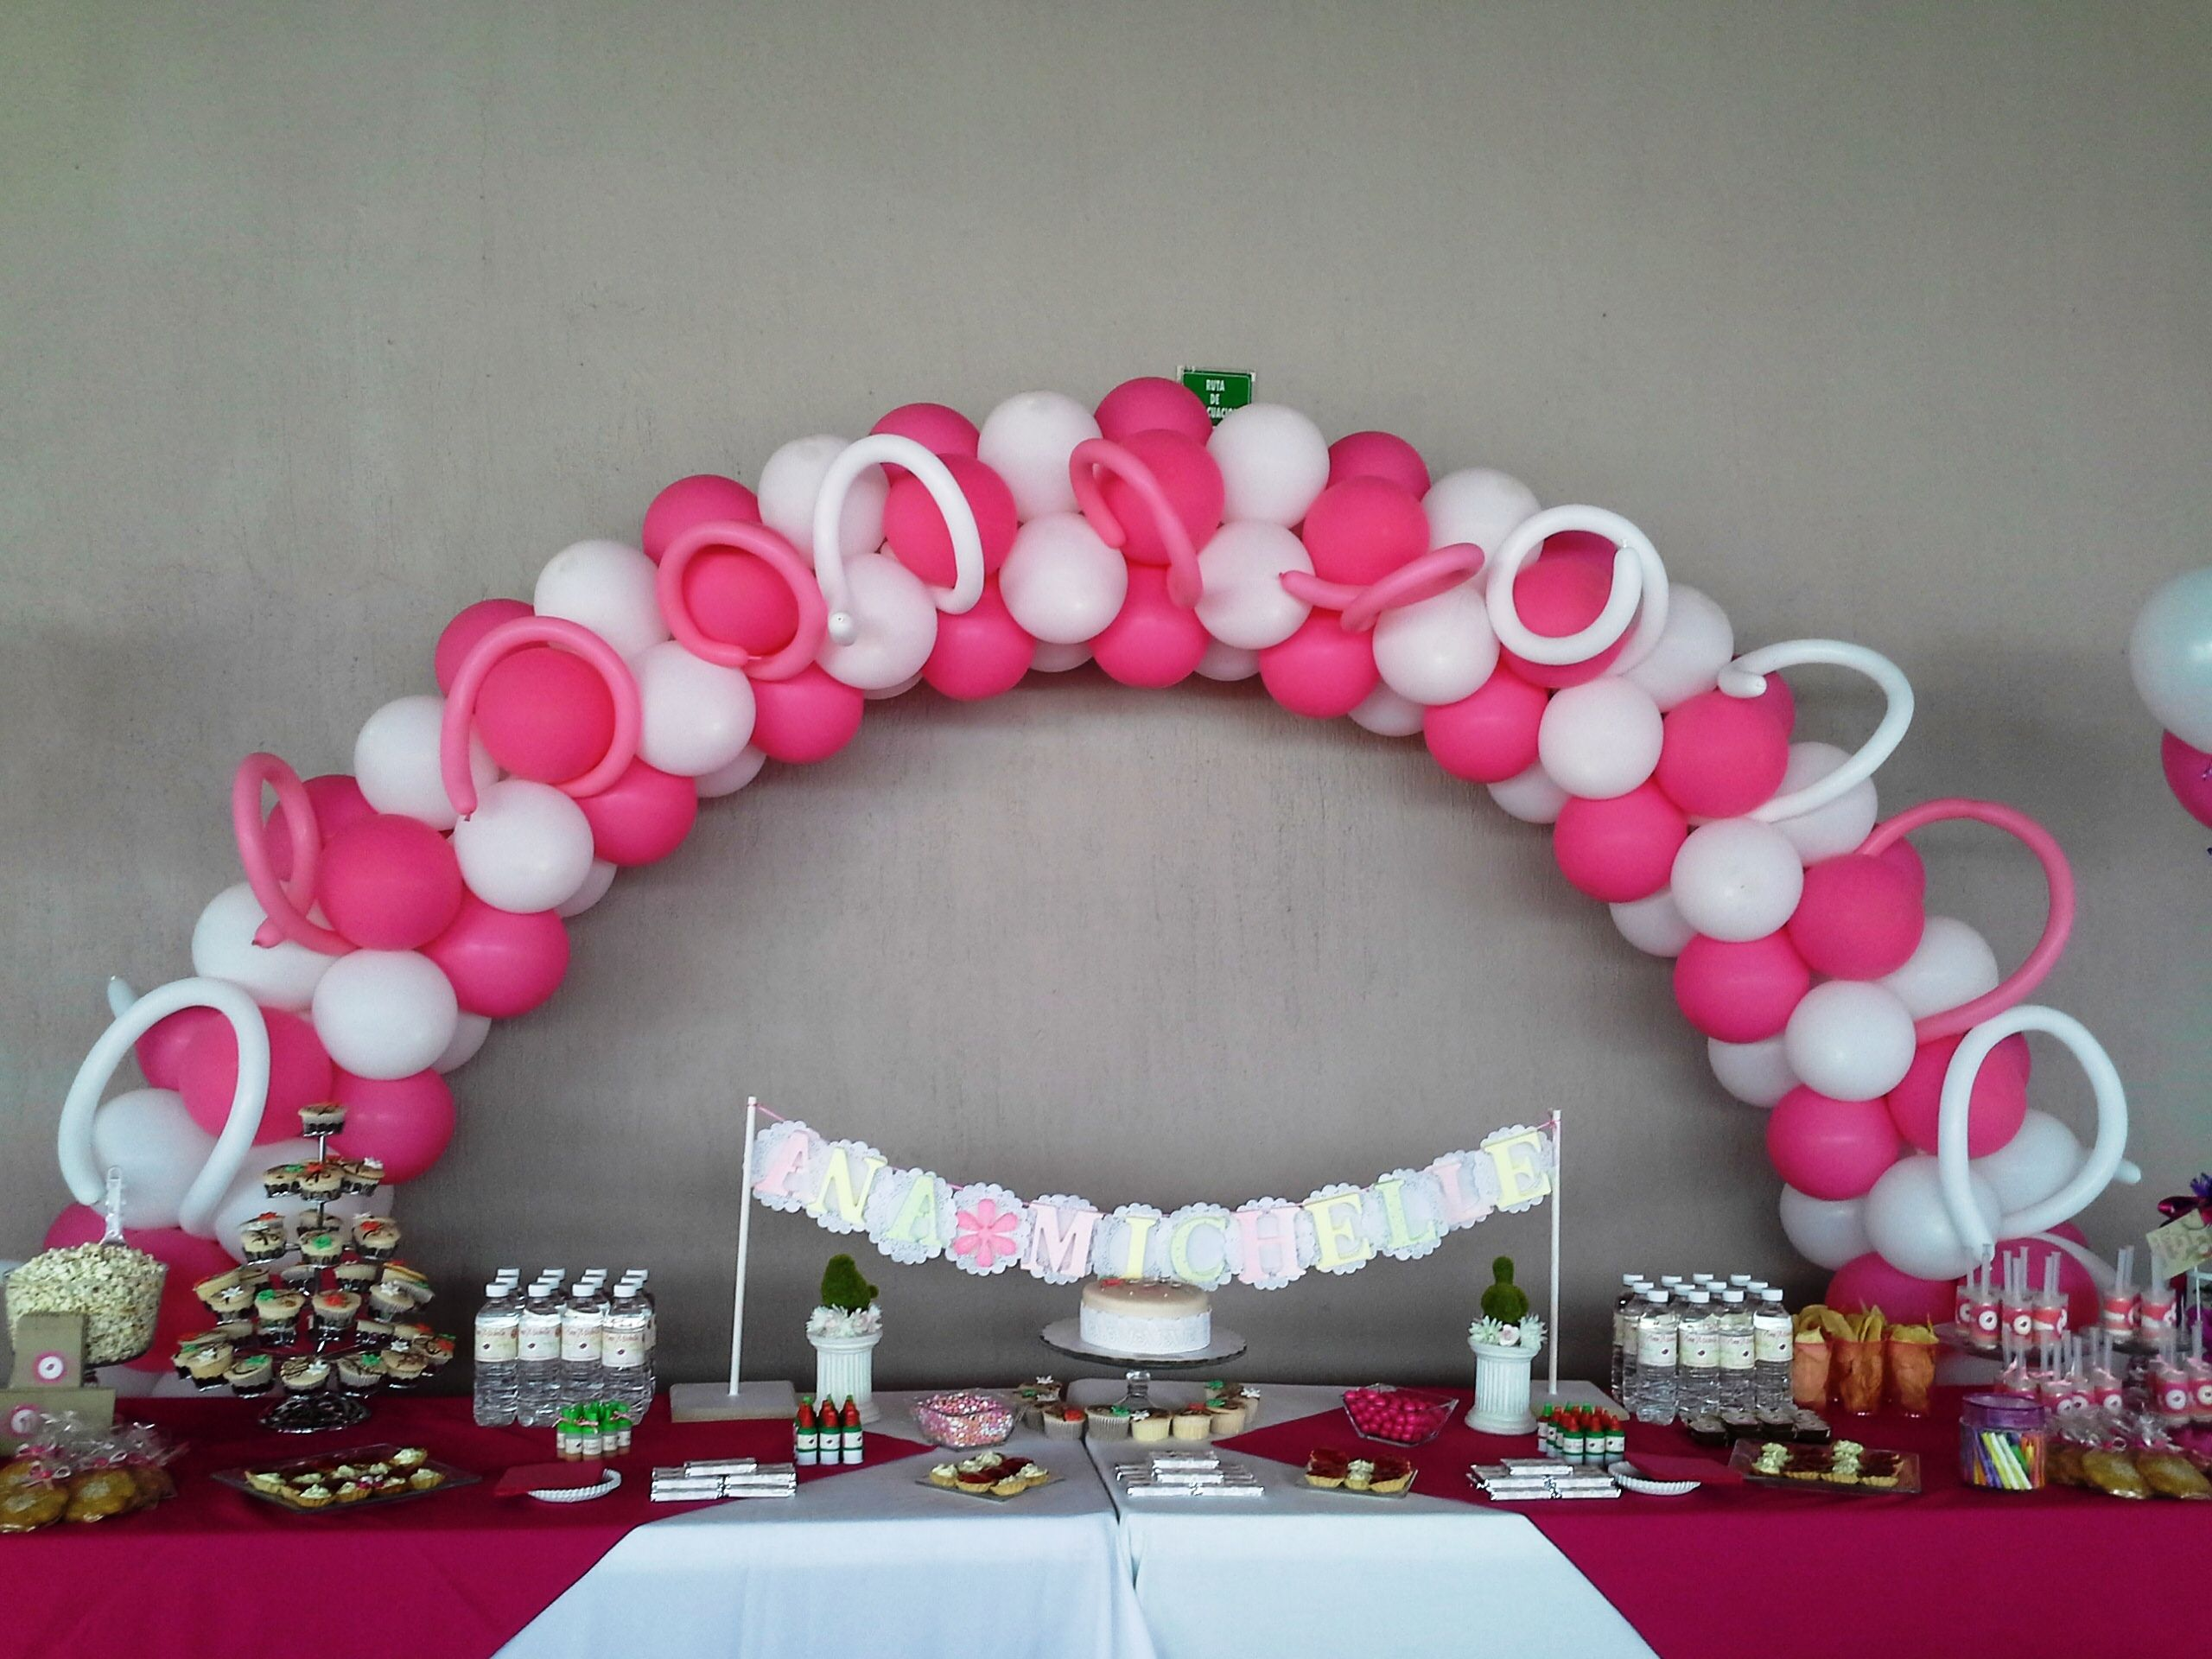 Decoración para bautizo de niña | Pink and White Party | Pinterest